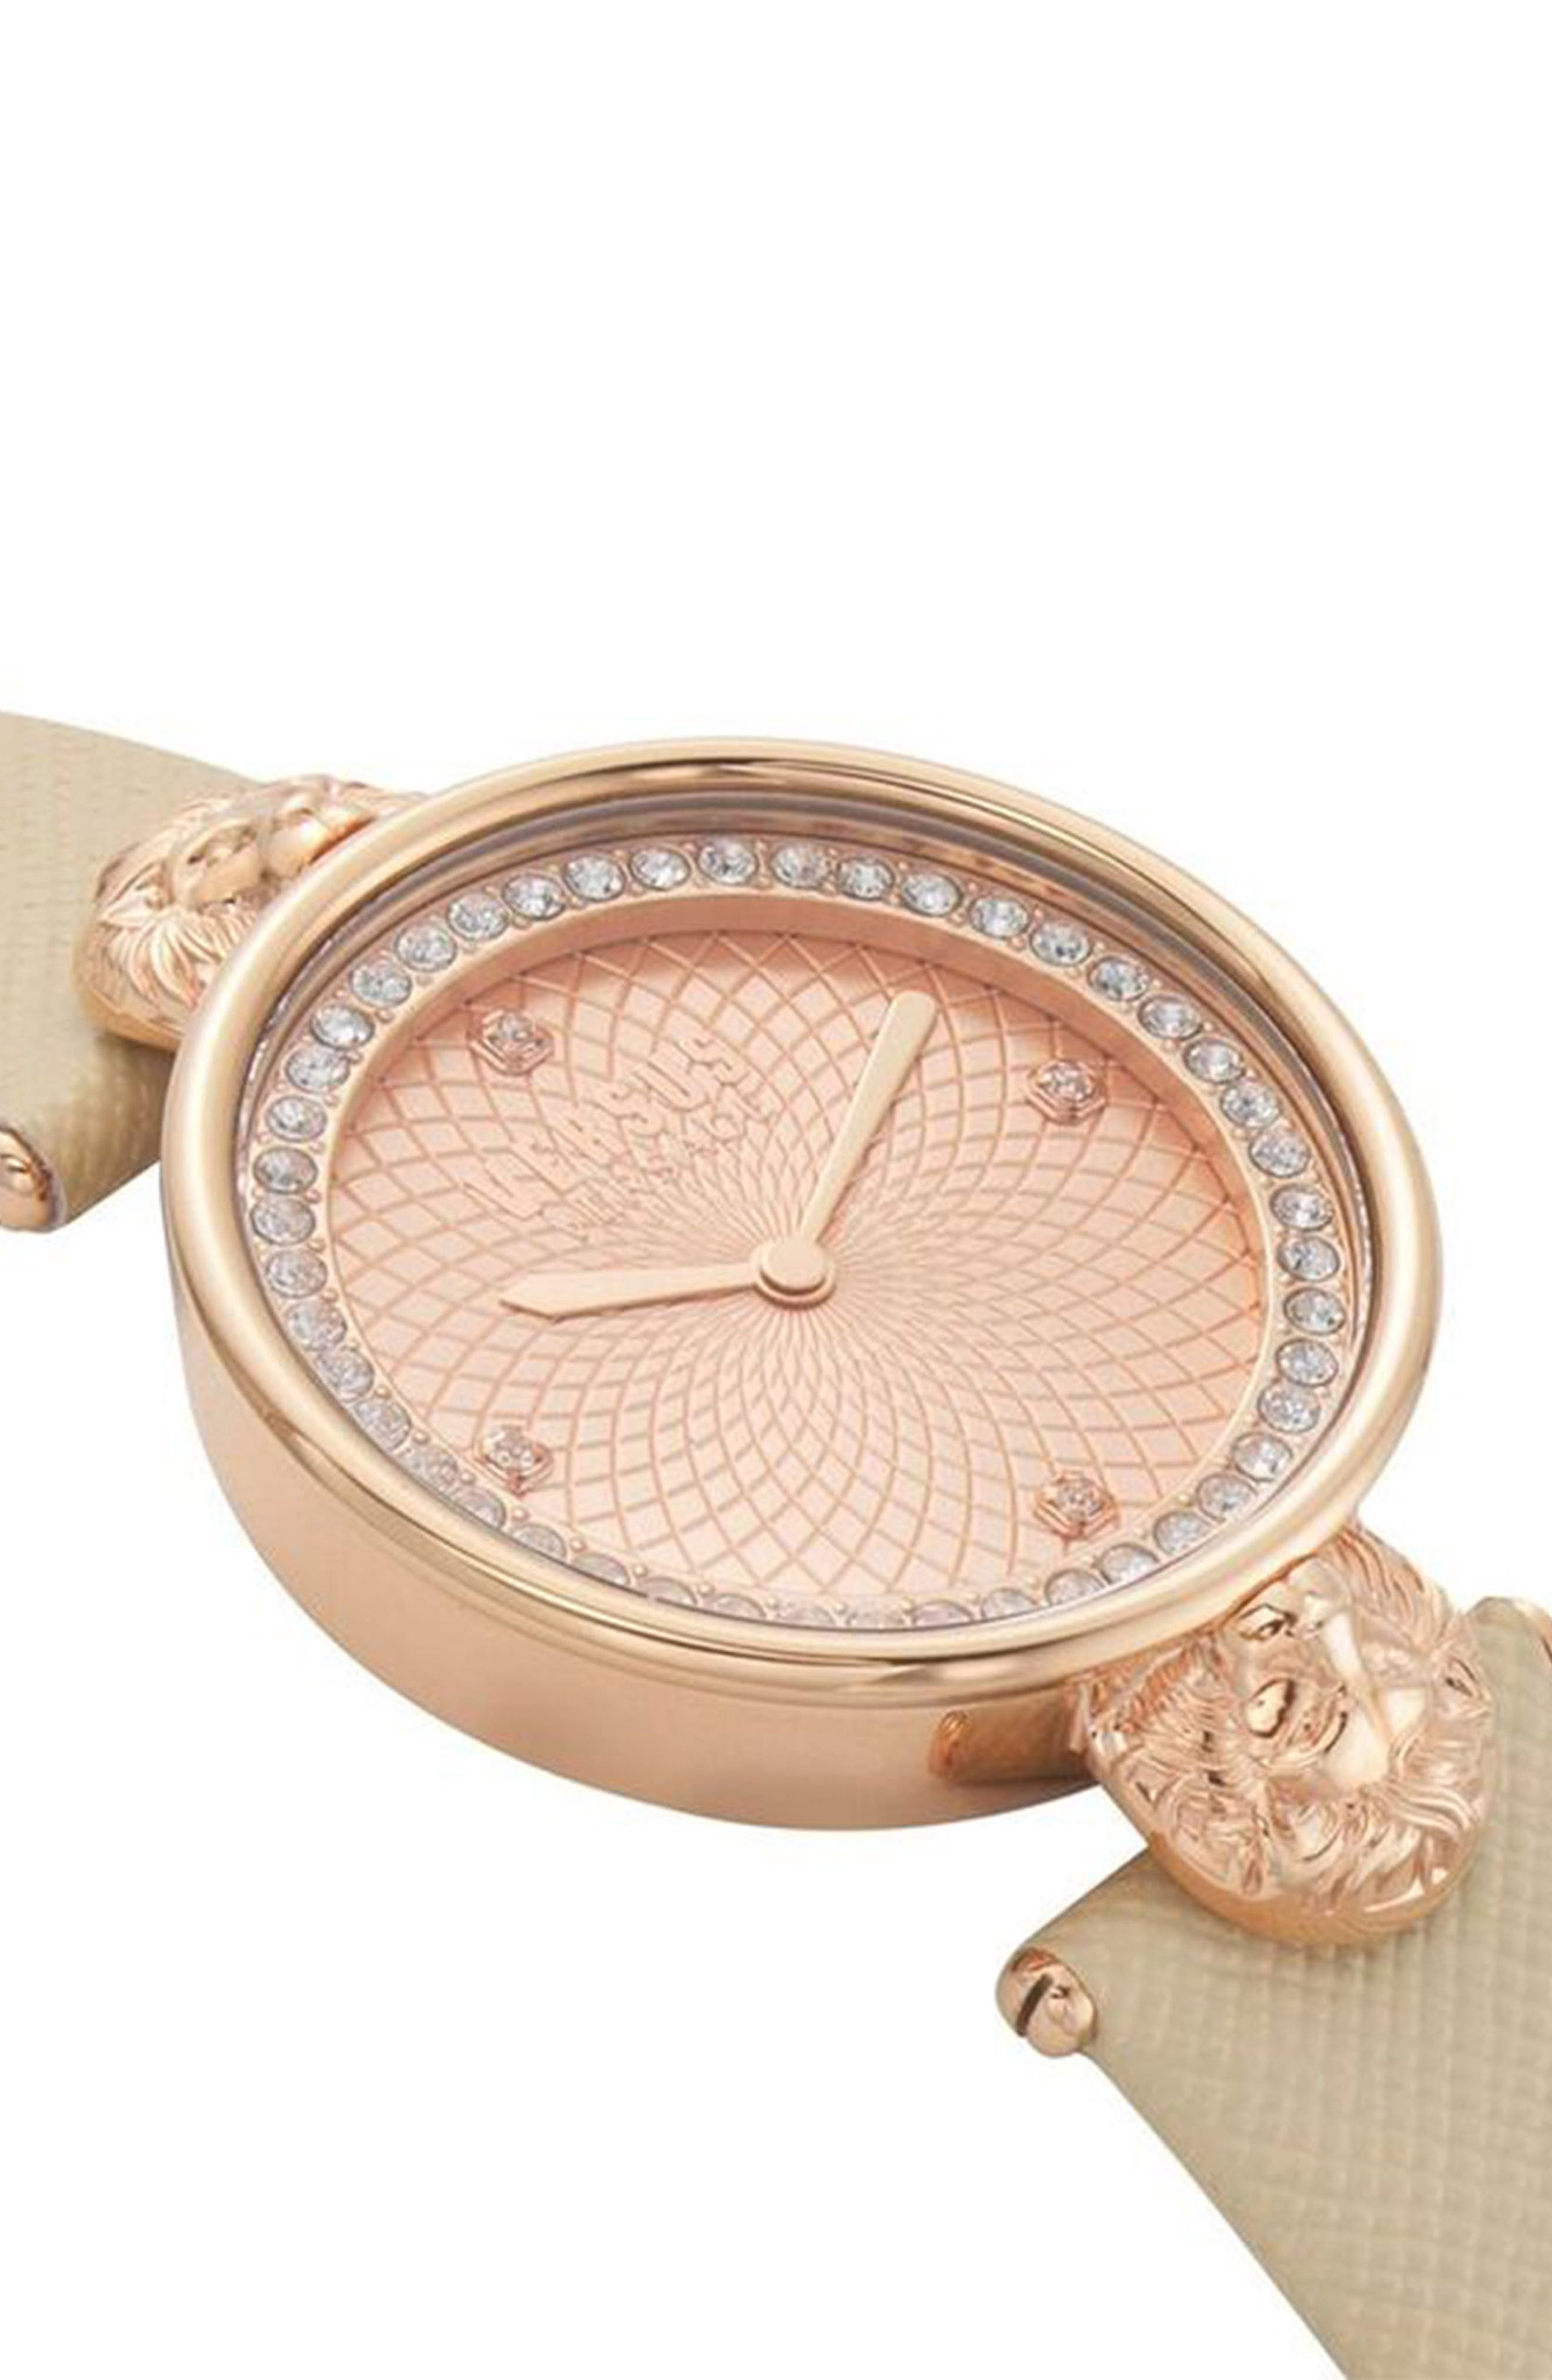 VERSUS Versace Victoria Leather Strap Watch, 34mm,                             Alternate thumbnail 3, color,                             BEIGE/ ROSE GOLD